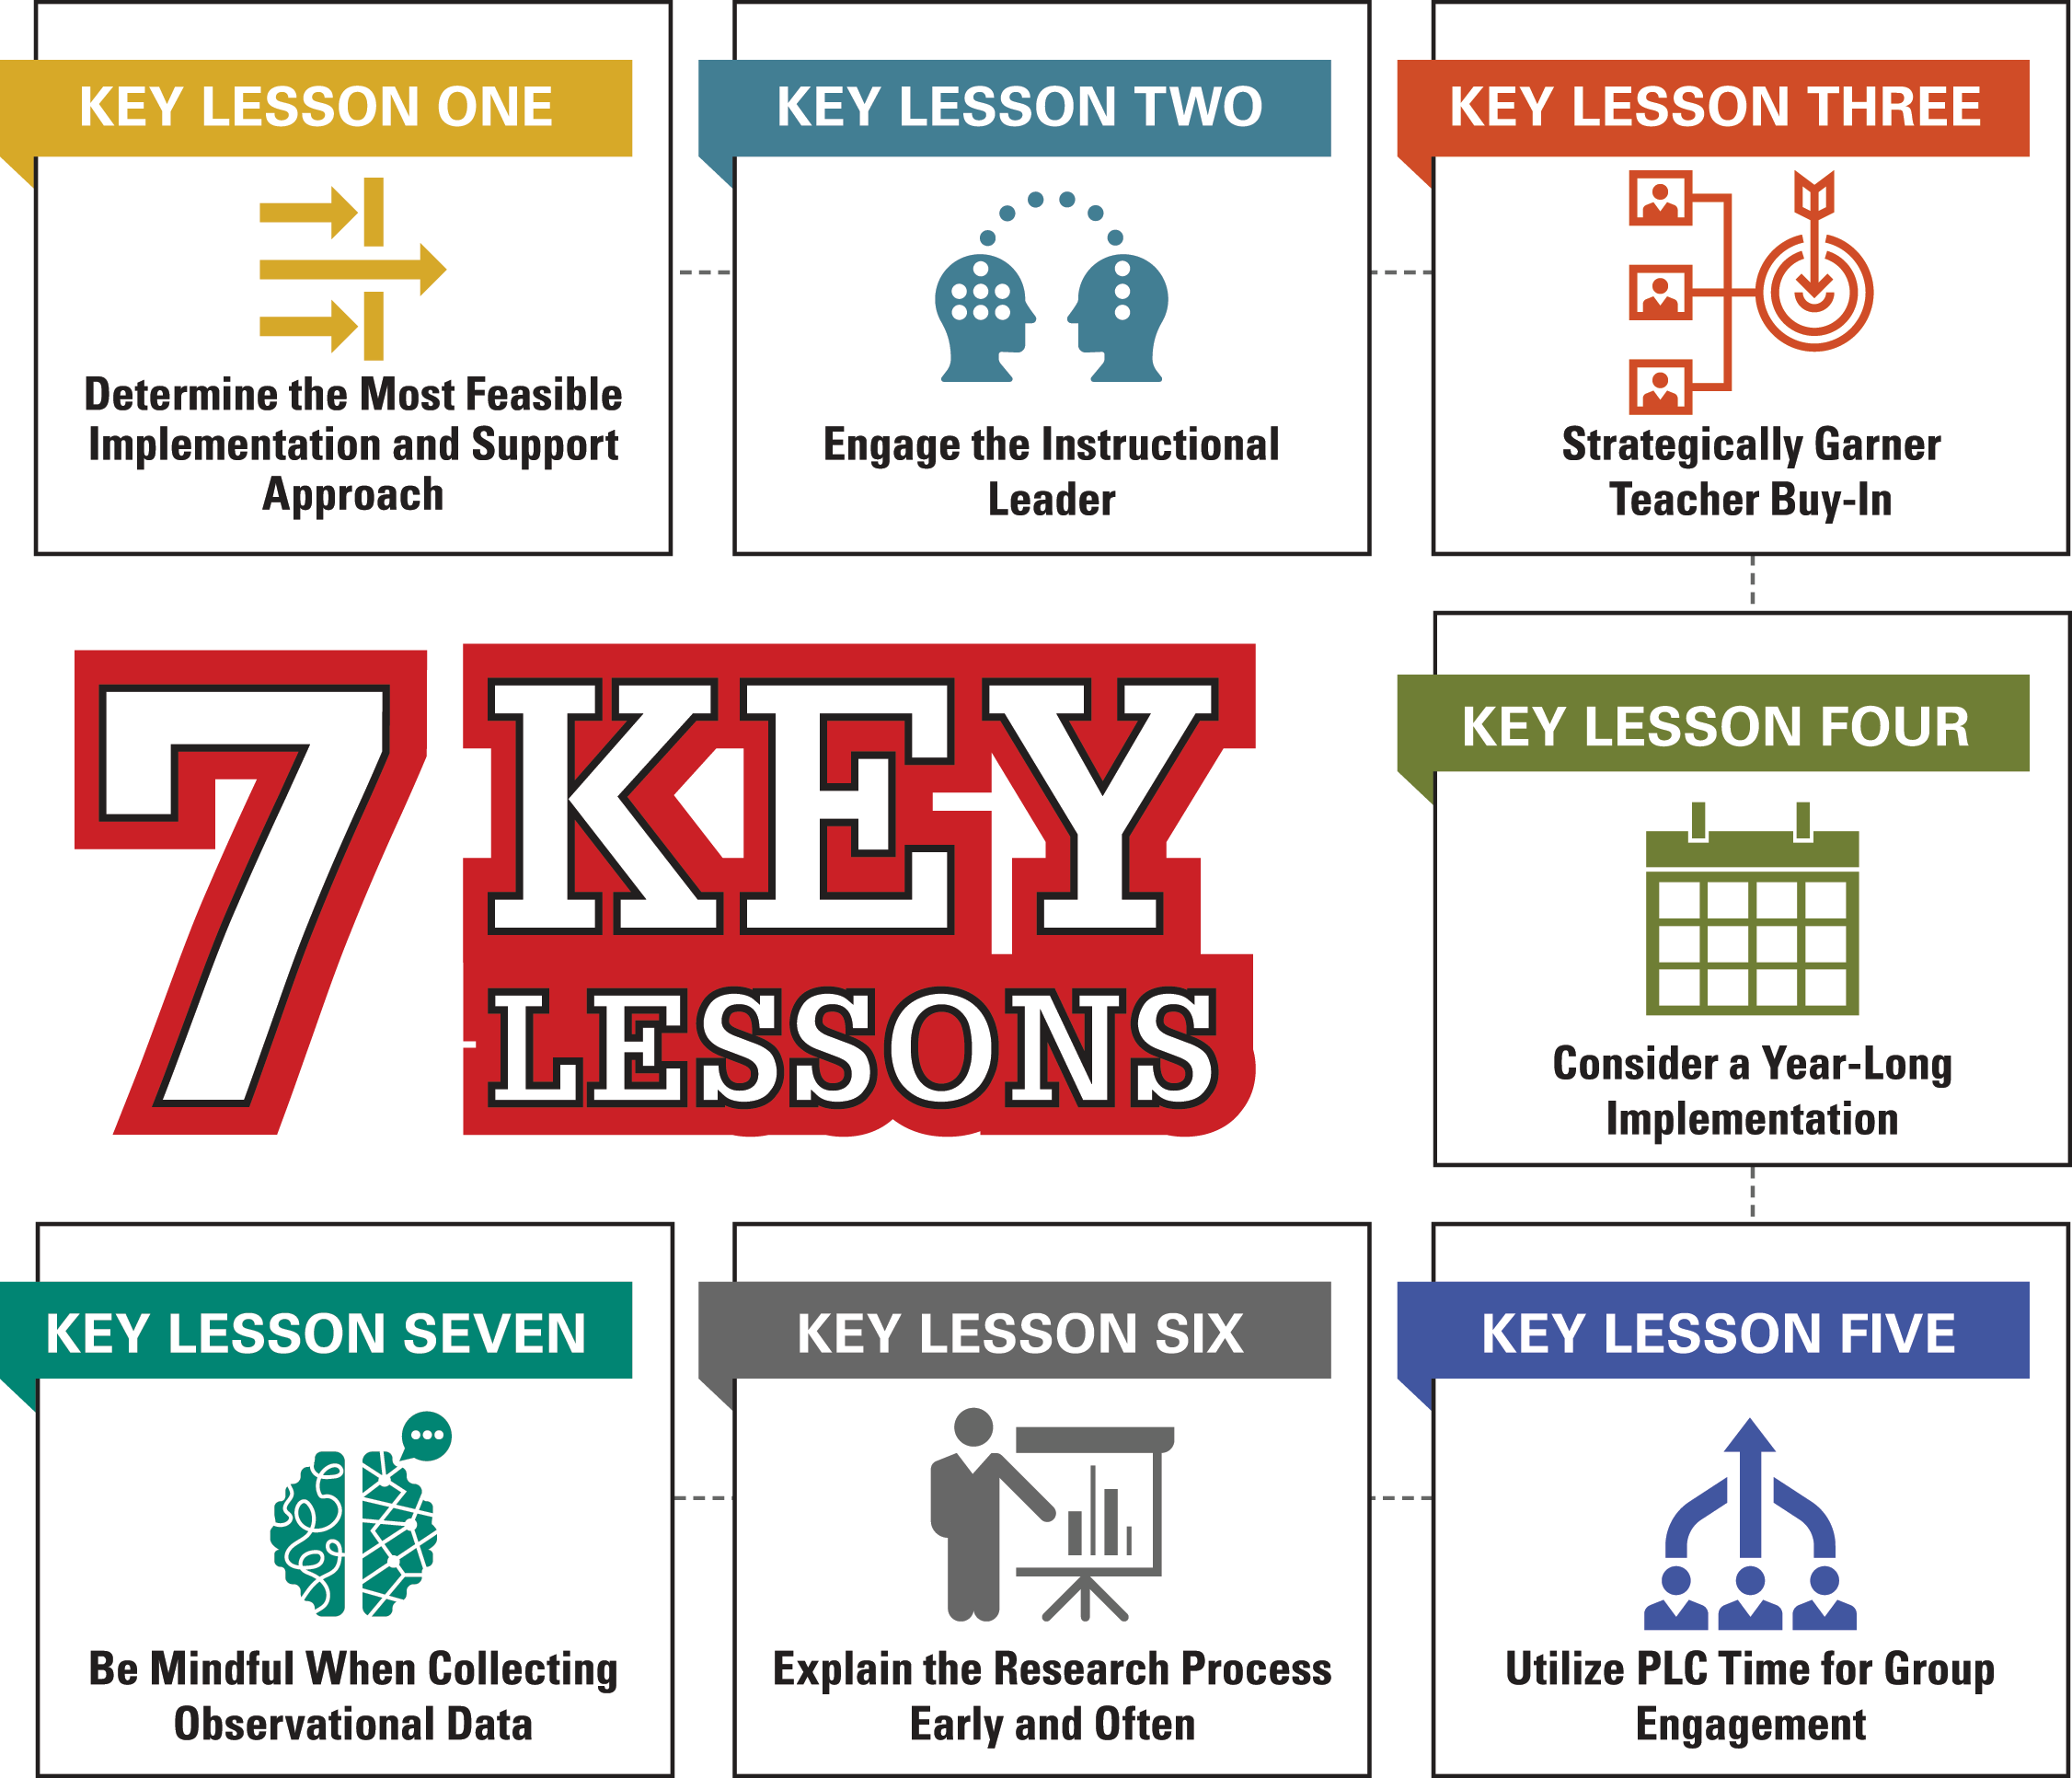 Seven key lessons. Key lesson one: Determine the Most Feasible Implementation and Support Approach. Key lesson two: Engage the Instructional Leader. Key lesson three: Strategically Garner Teacher Buy-In. Key lesson four: Consider a Year-Long Implementation. Key lesson five: Utilize PLC Time for Group Engagement. Key lesson six: Explain the Research Process Early and Often. Key lesson seven: Be Mindful When Collecting Observational Data.